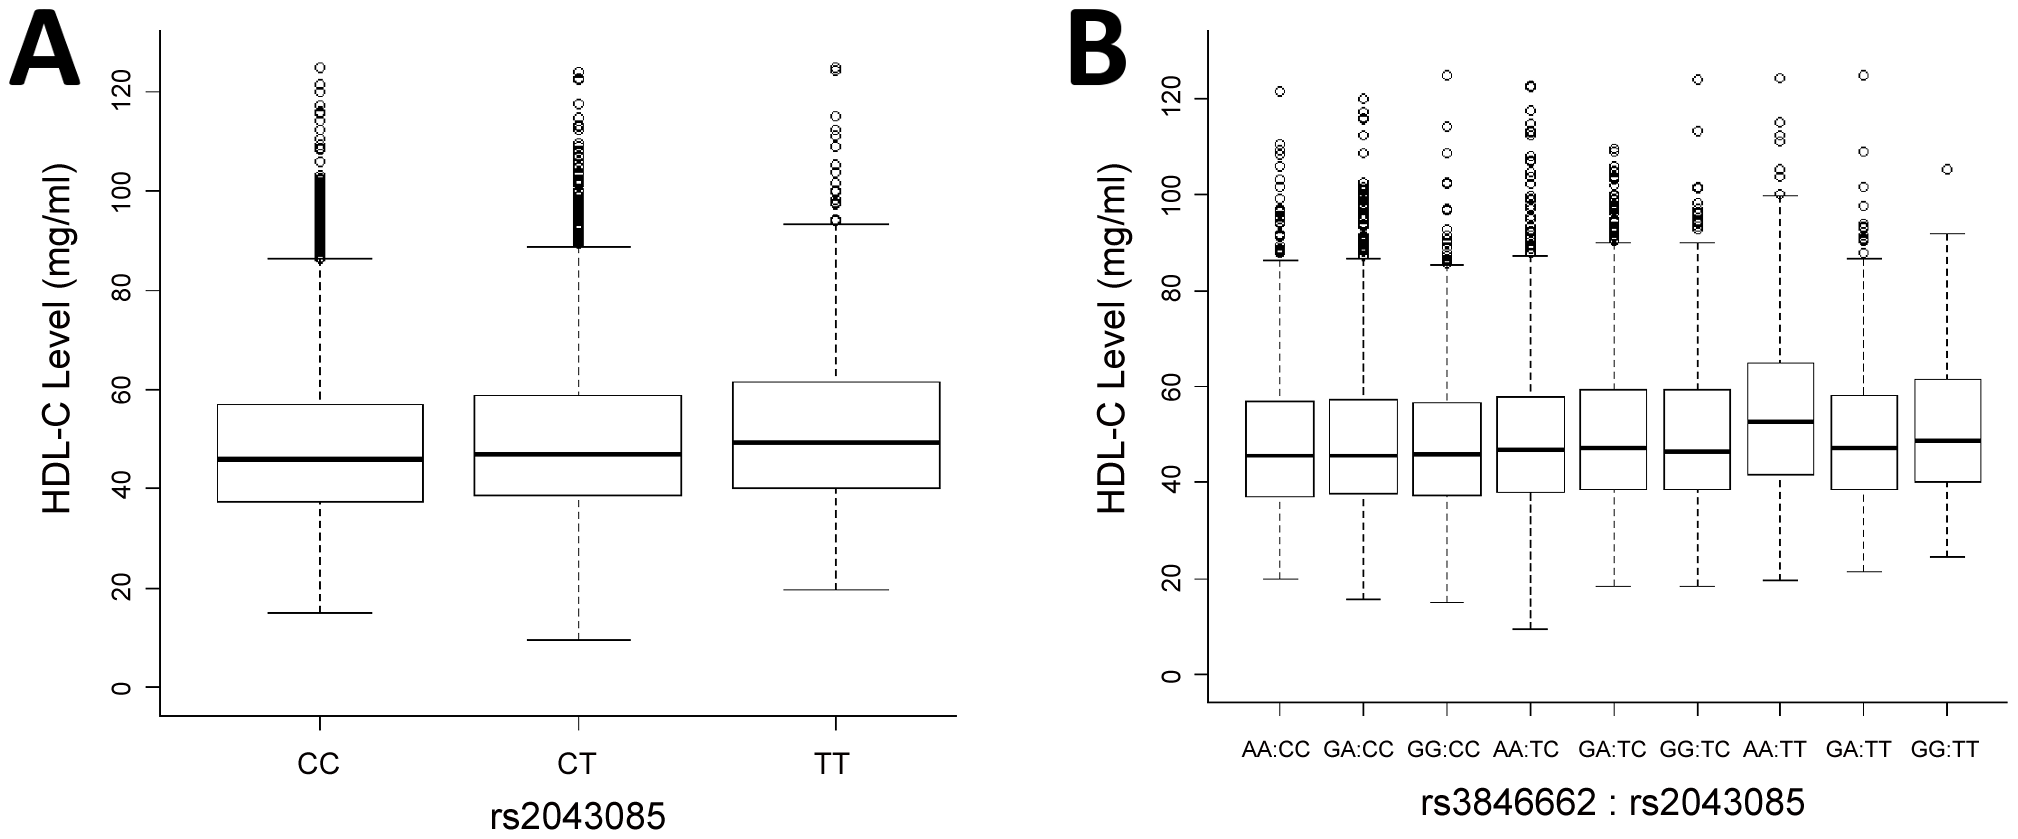 Marginal and interaction effect sizes on HDL-C level in ARIC EA cohort.